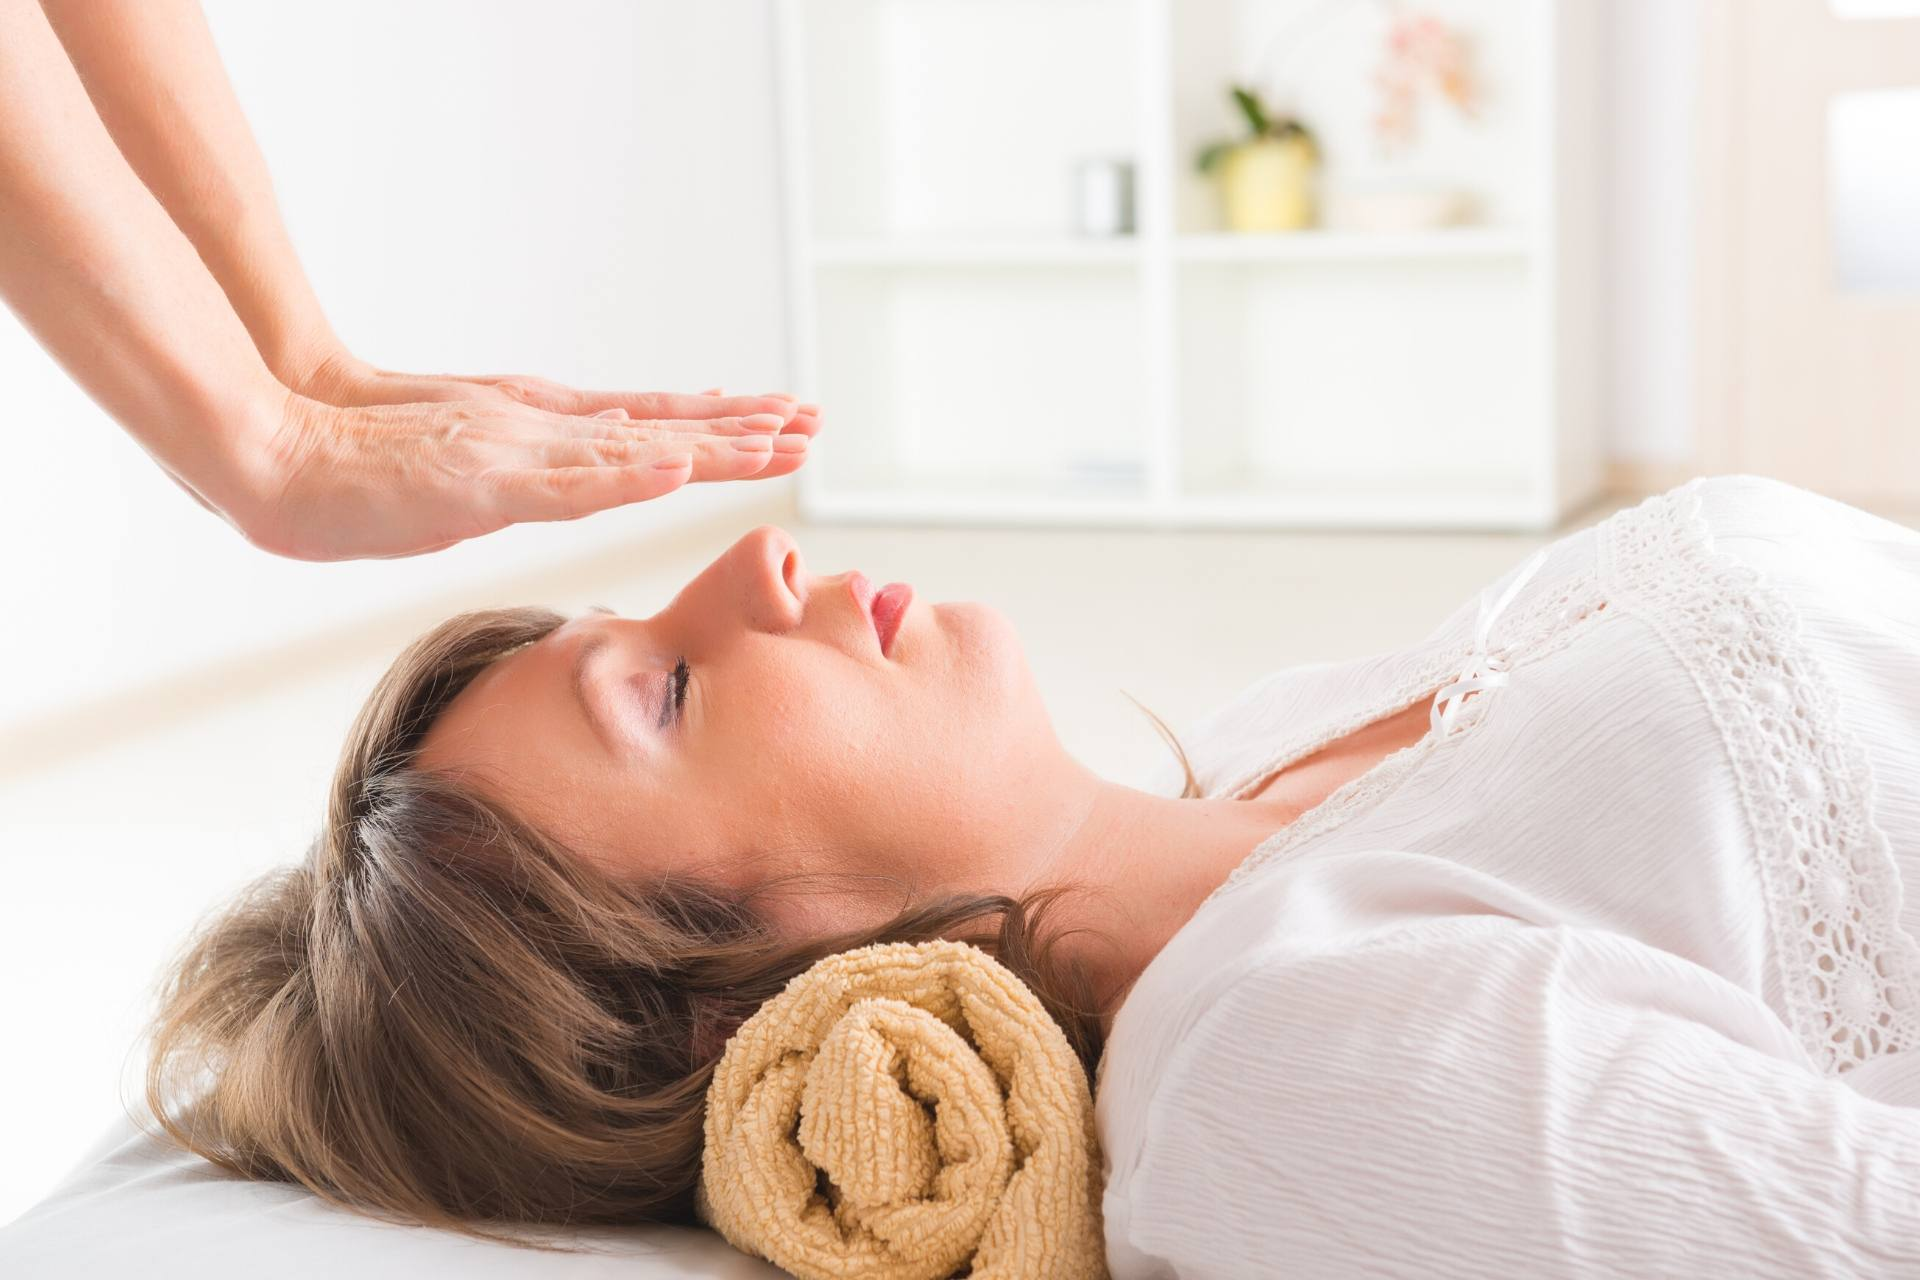 reiki-for-health-and-wellbeing-bfitnessandwellbeing